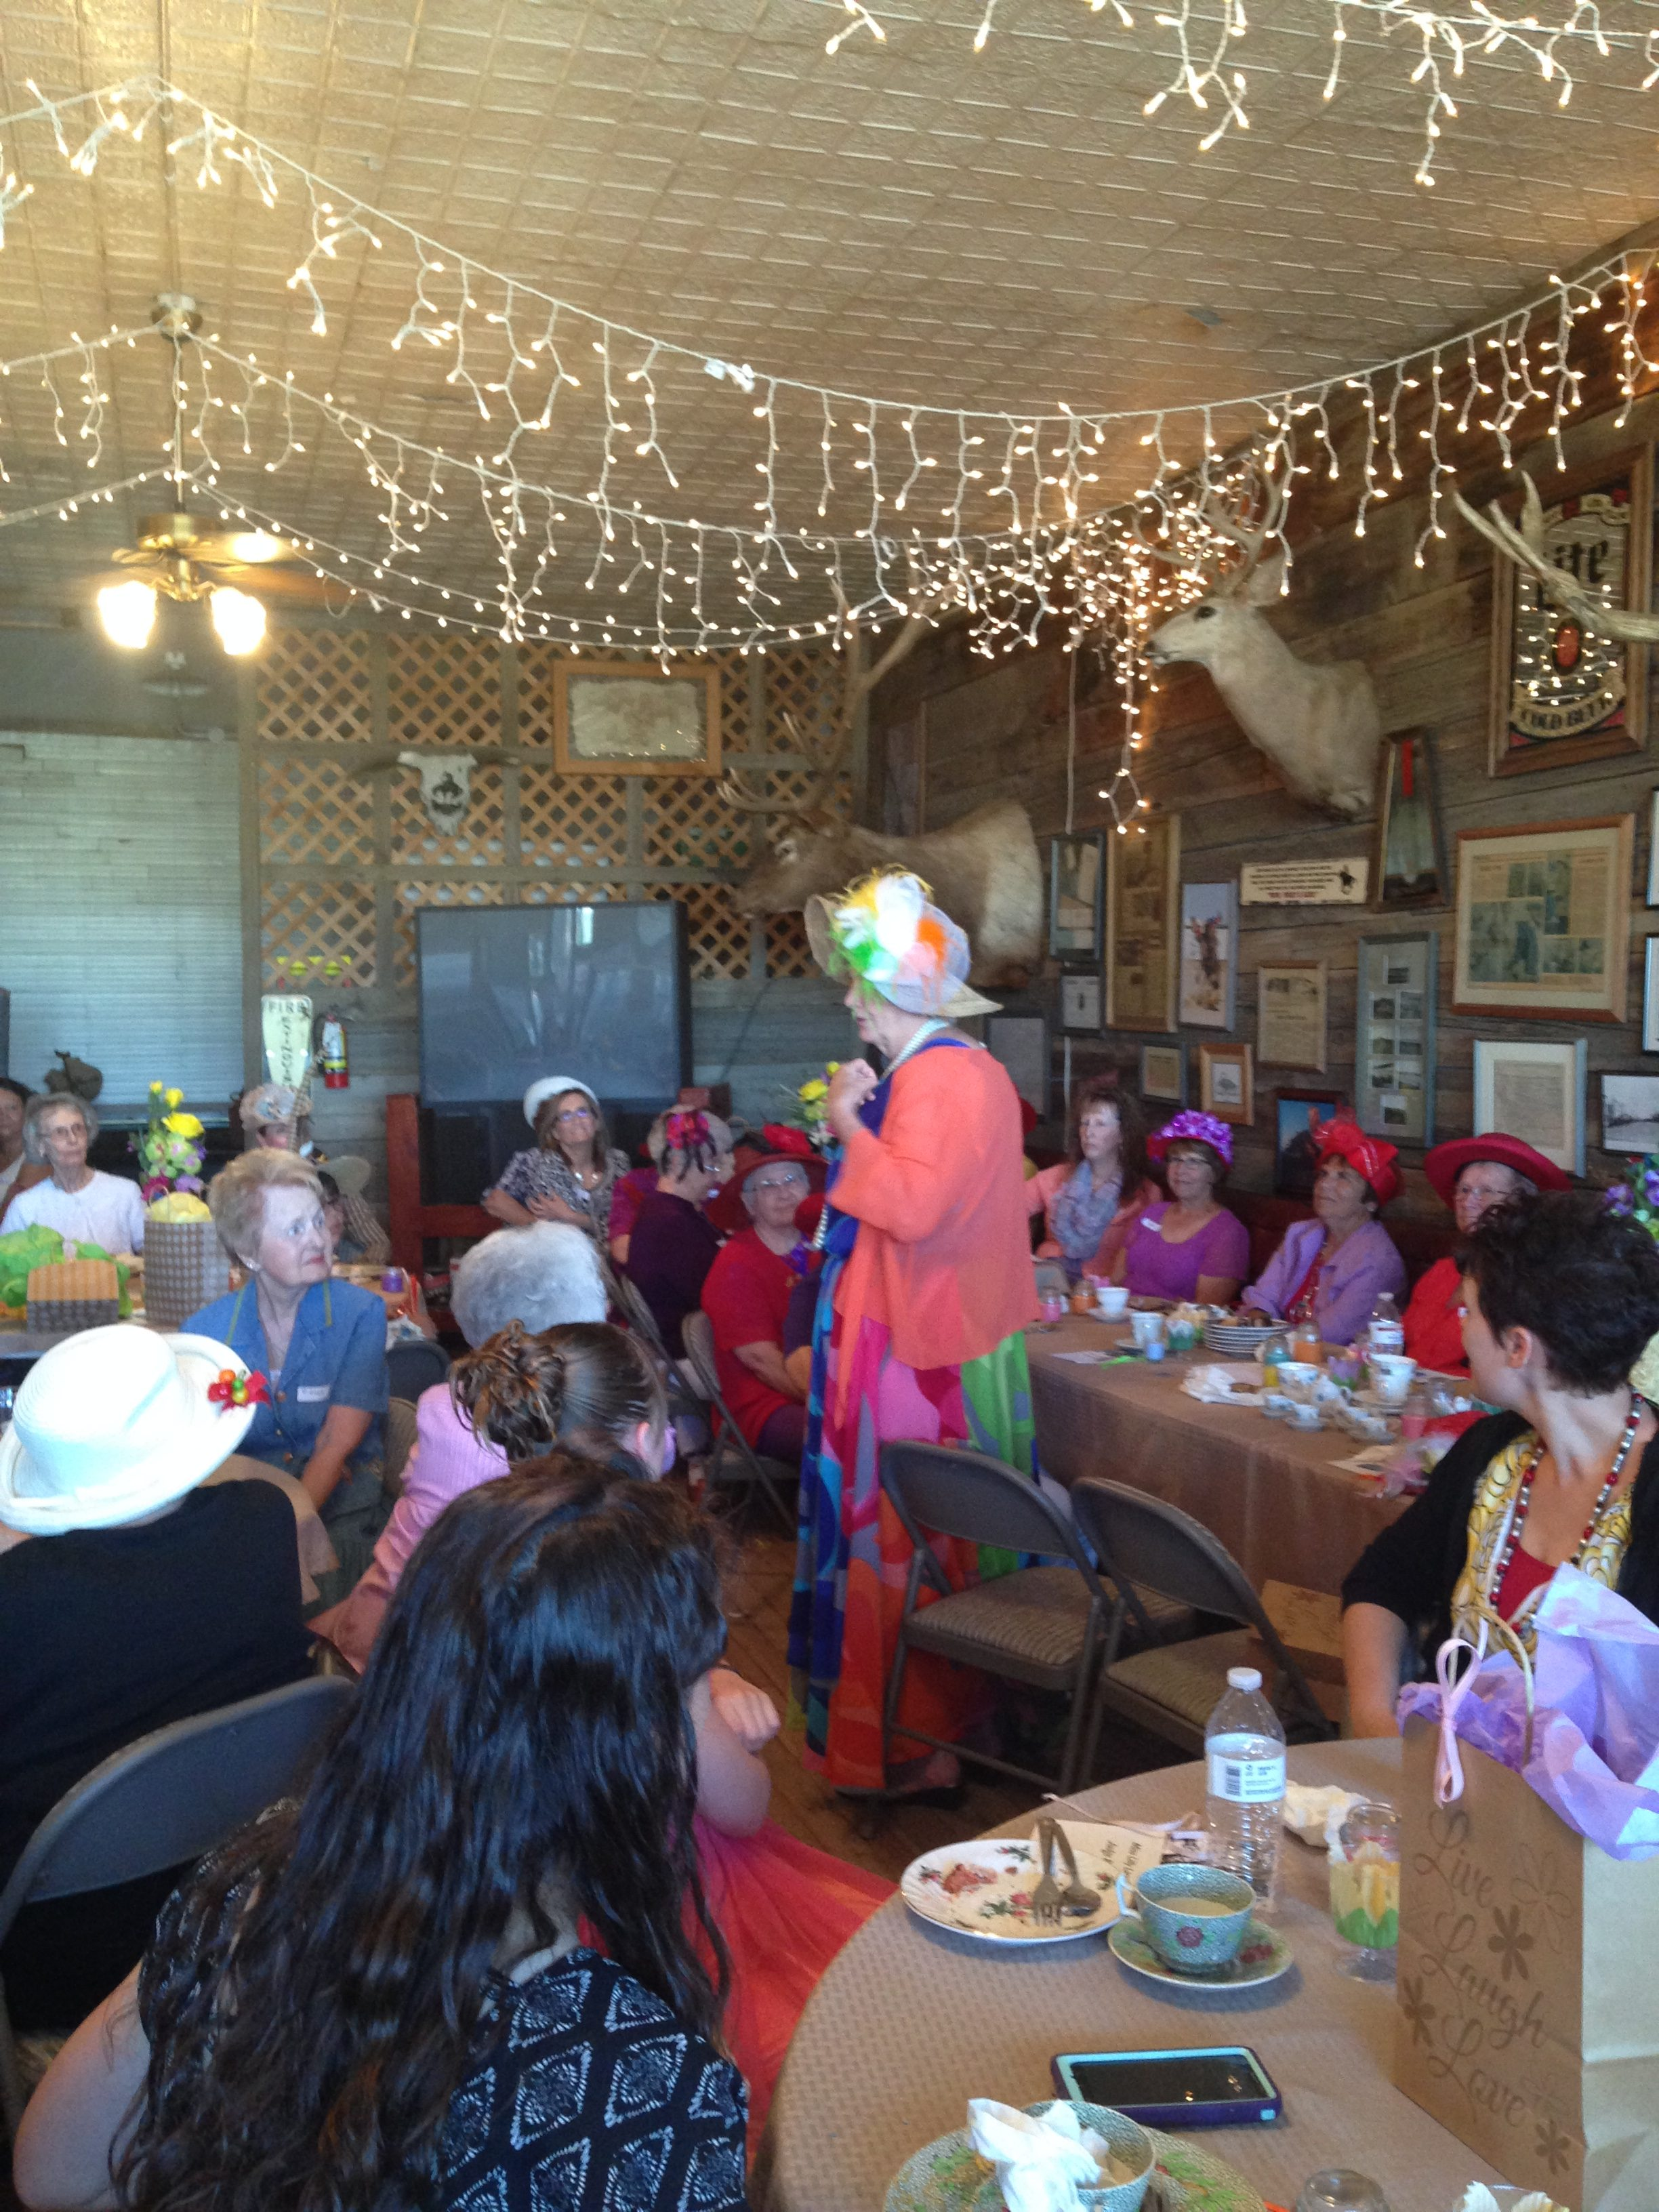 guest-sharing-hat-story-IMG_6104-e1467245809726